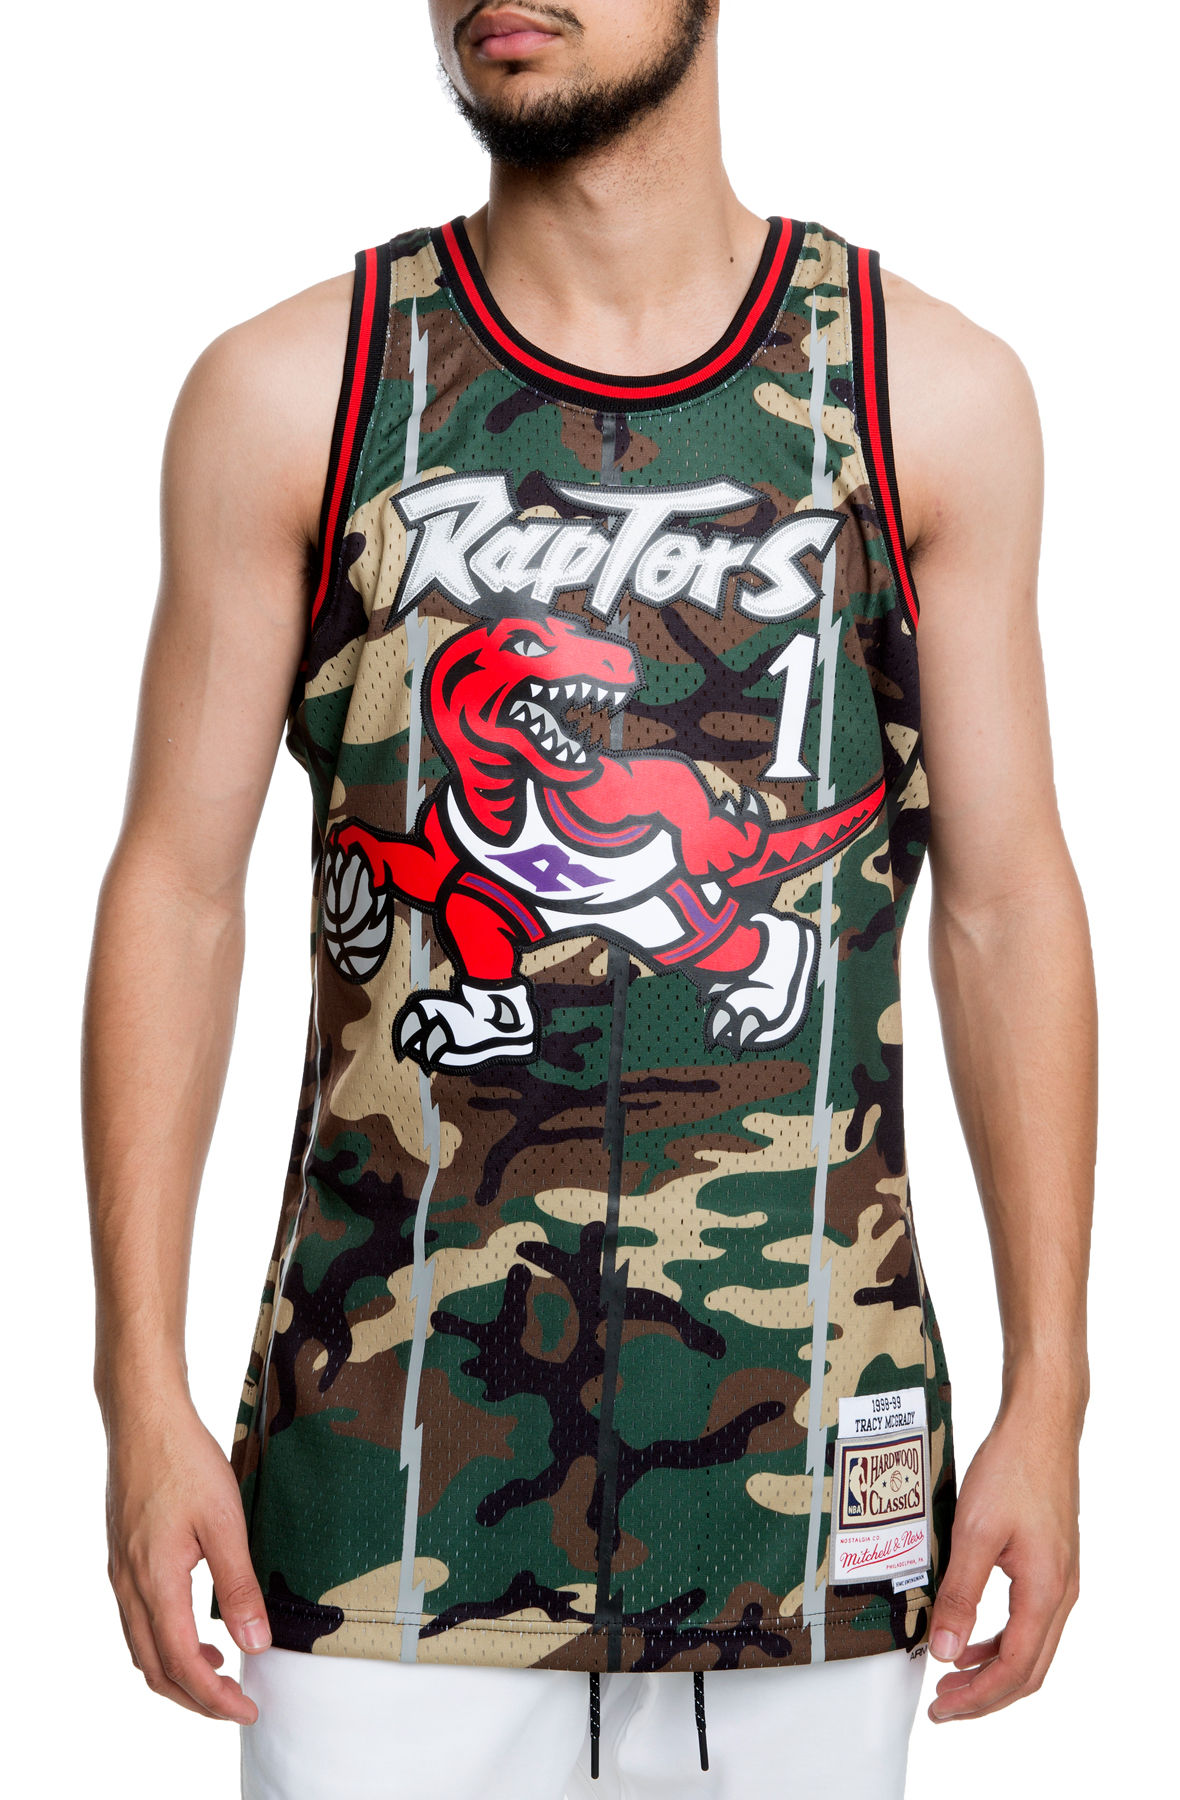 separation shoes 006d5 0e271 The Toronto Raptors Tracy McGrady Jersey in Woodland Camo